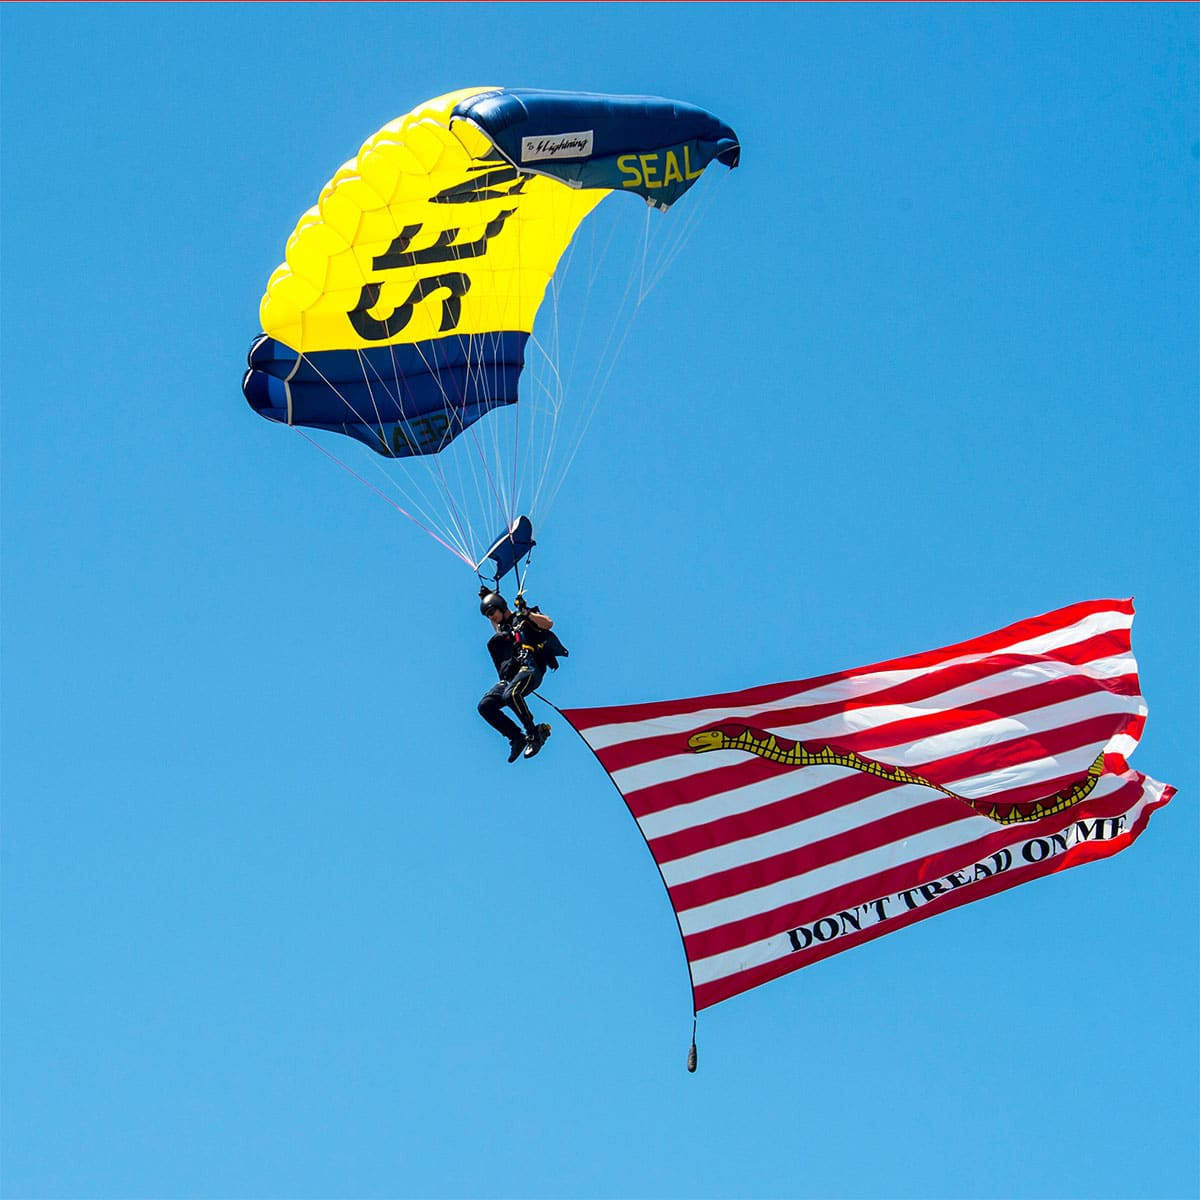 LONG BEACH, Miss. (April 3, 2017) A Sailor assigned to the U.S. Navy parachute demonstration team, the Leap Frogs, proudly flies the Don't Tread On Me flag during a skydiving demonstration at Long Beach High School in support of Navy Week Gulfport/Biloxi. Navy Week programs serve as the Navy's principal outreach effort in areas of the country without a significant Navy presence.